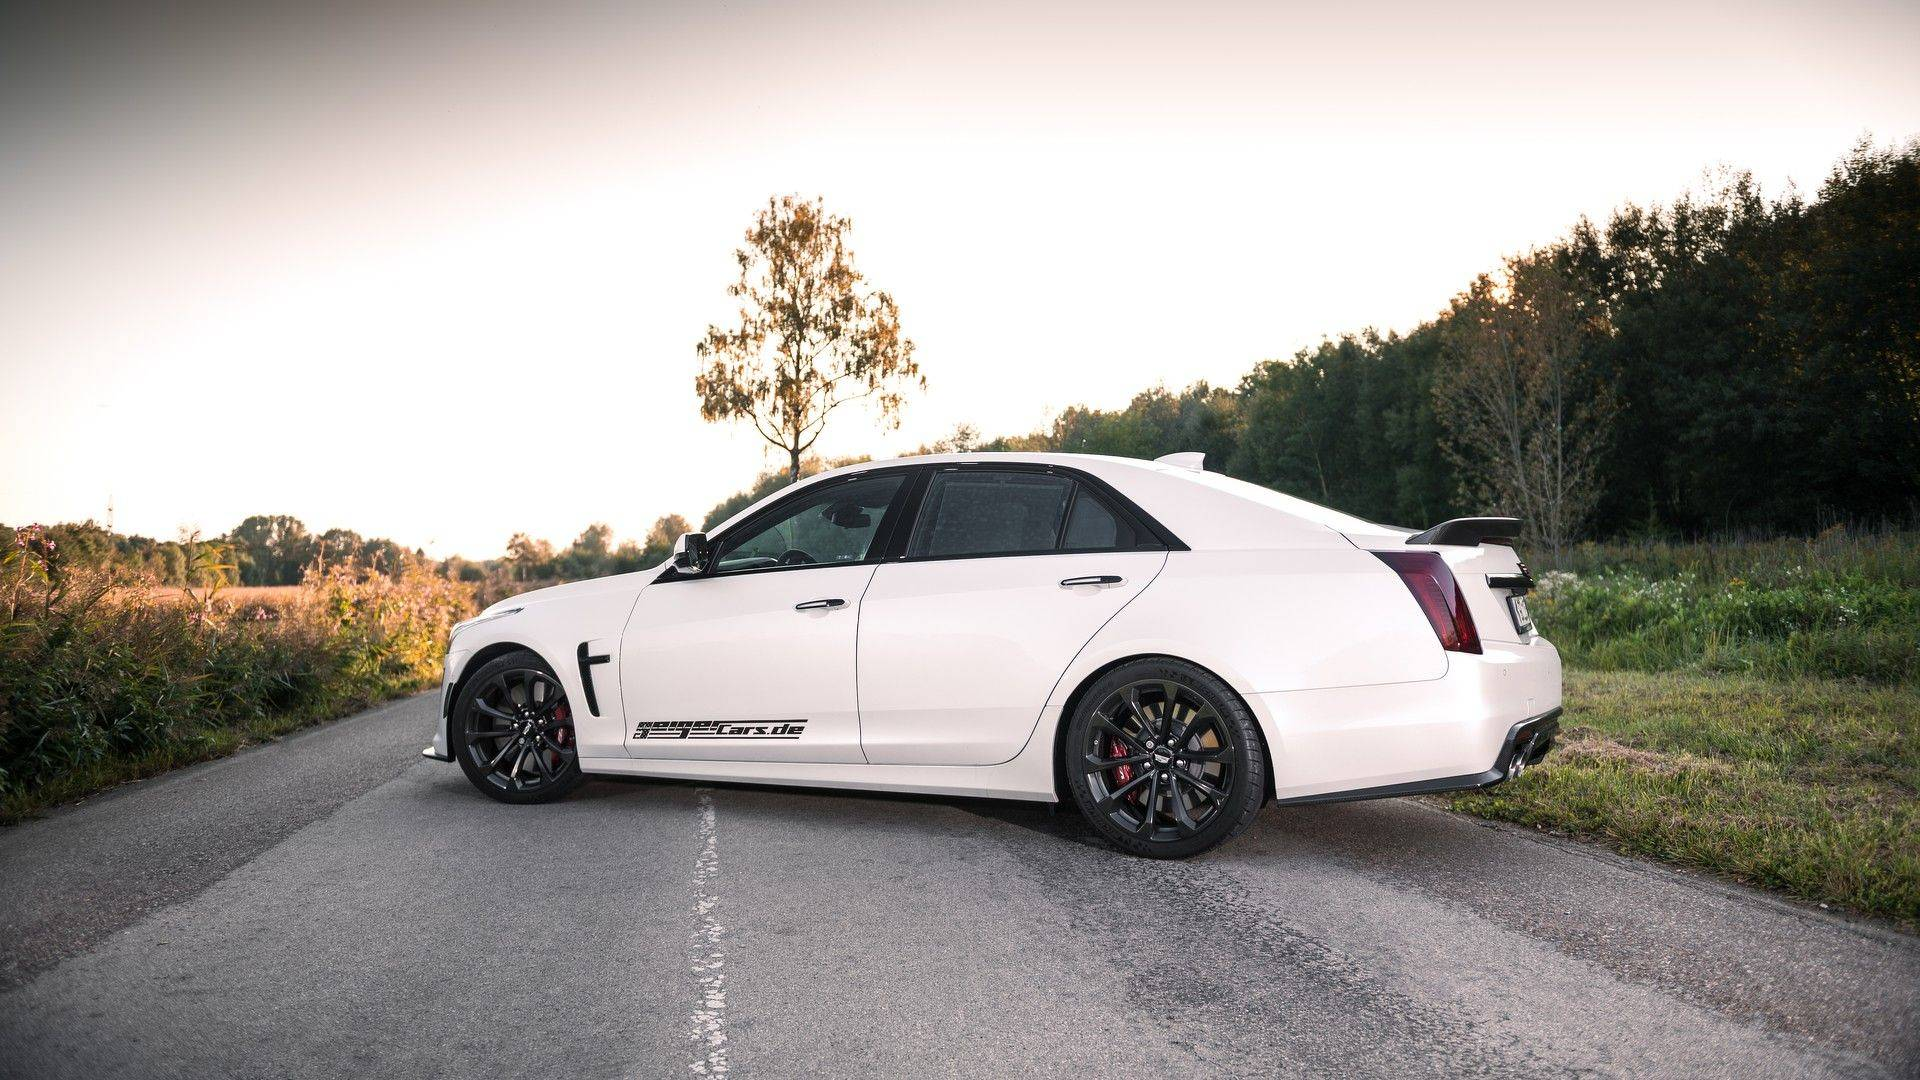 cadillac-cts-v-by-geigercars (3)